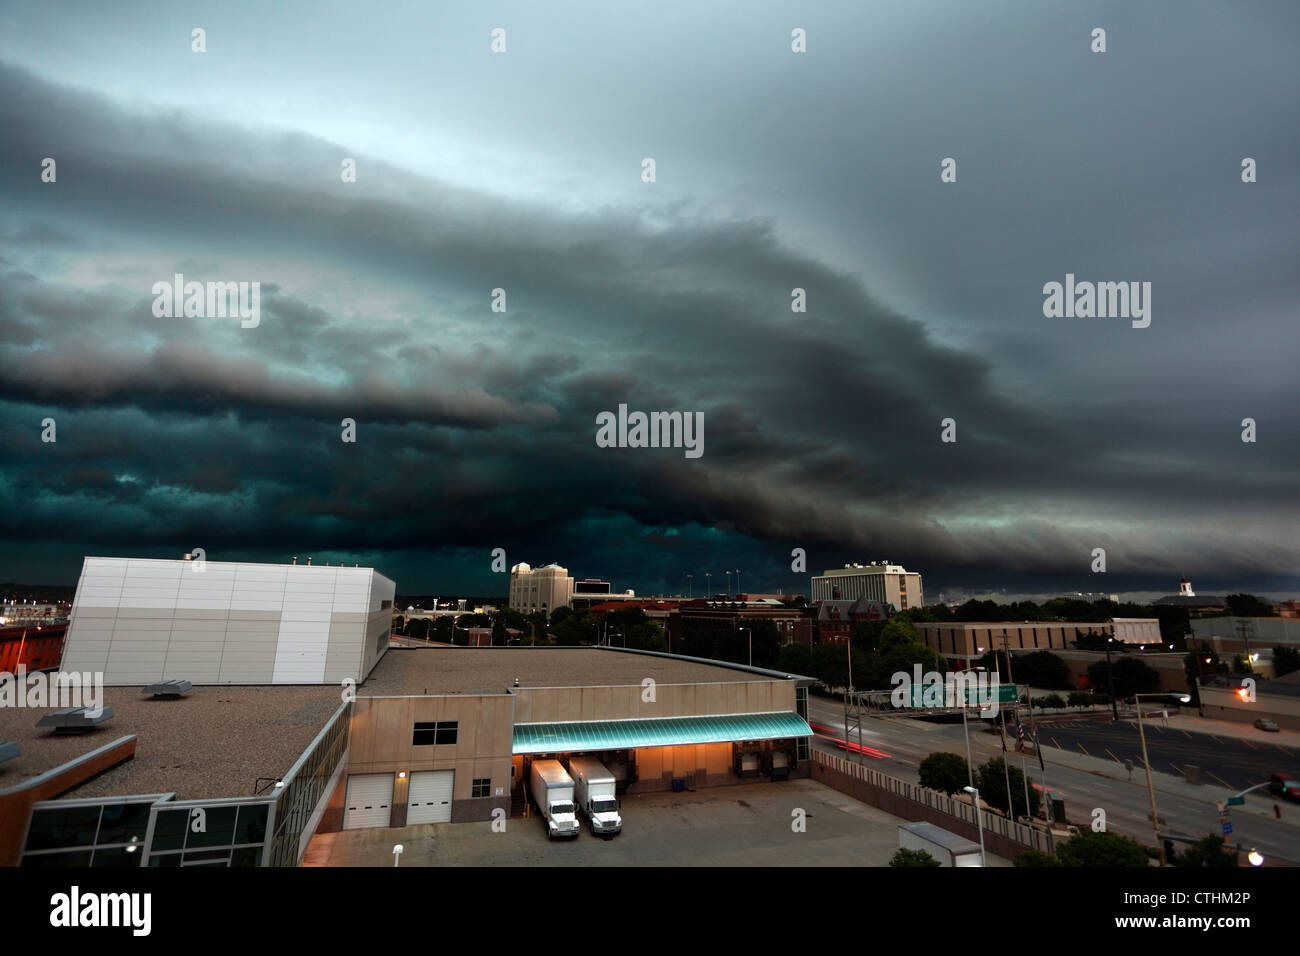 Highly detailed shelf cloud thunderstorm, showing marked green color and cloud layer delineation over a city. - Stock Image